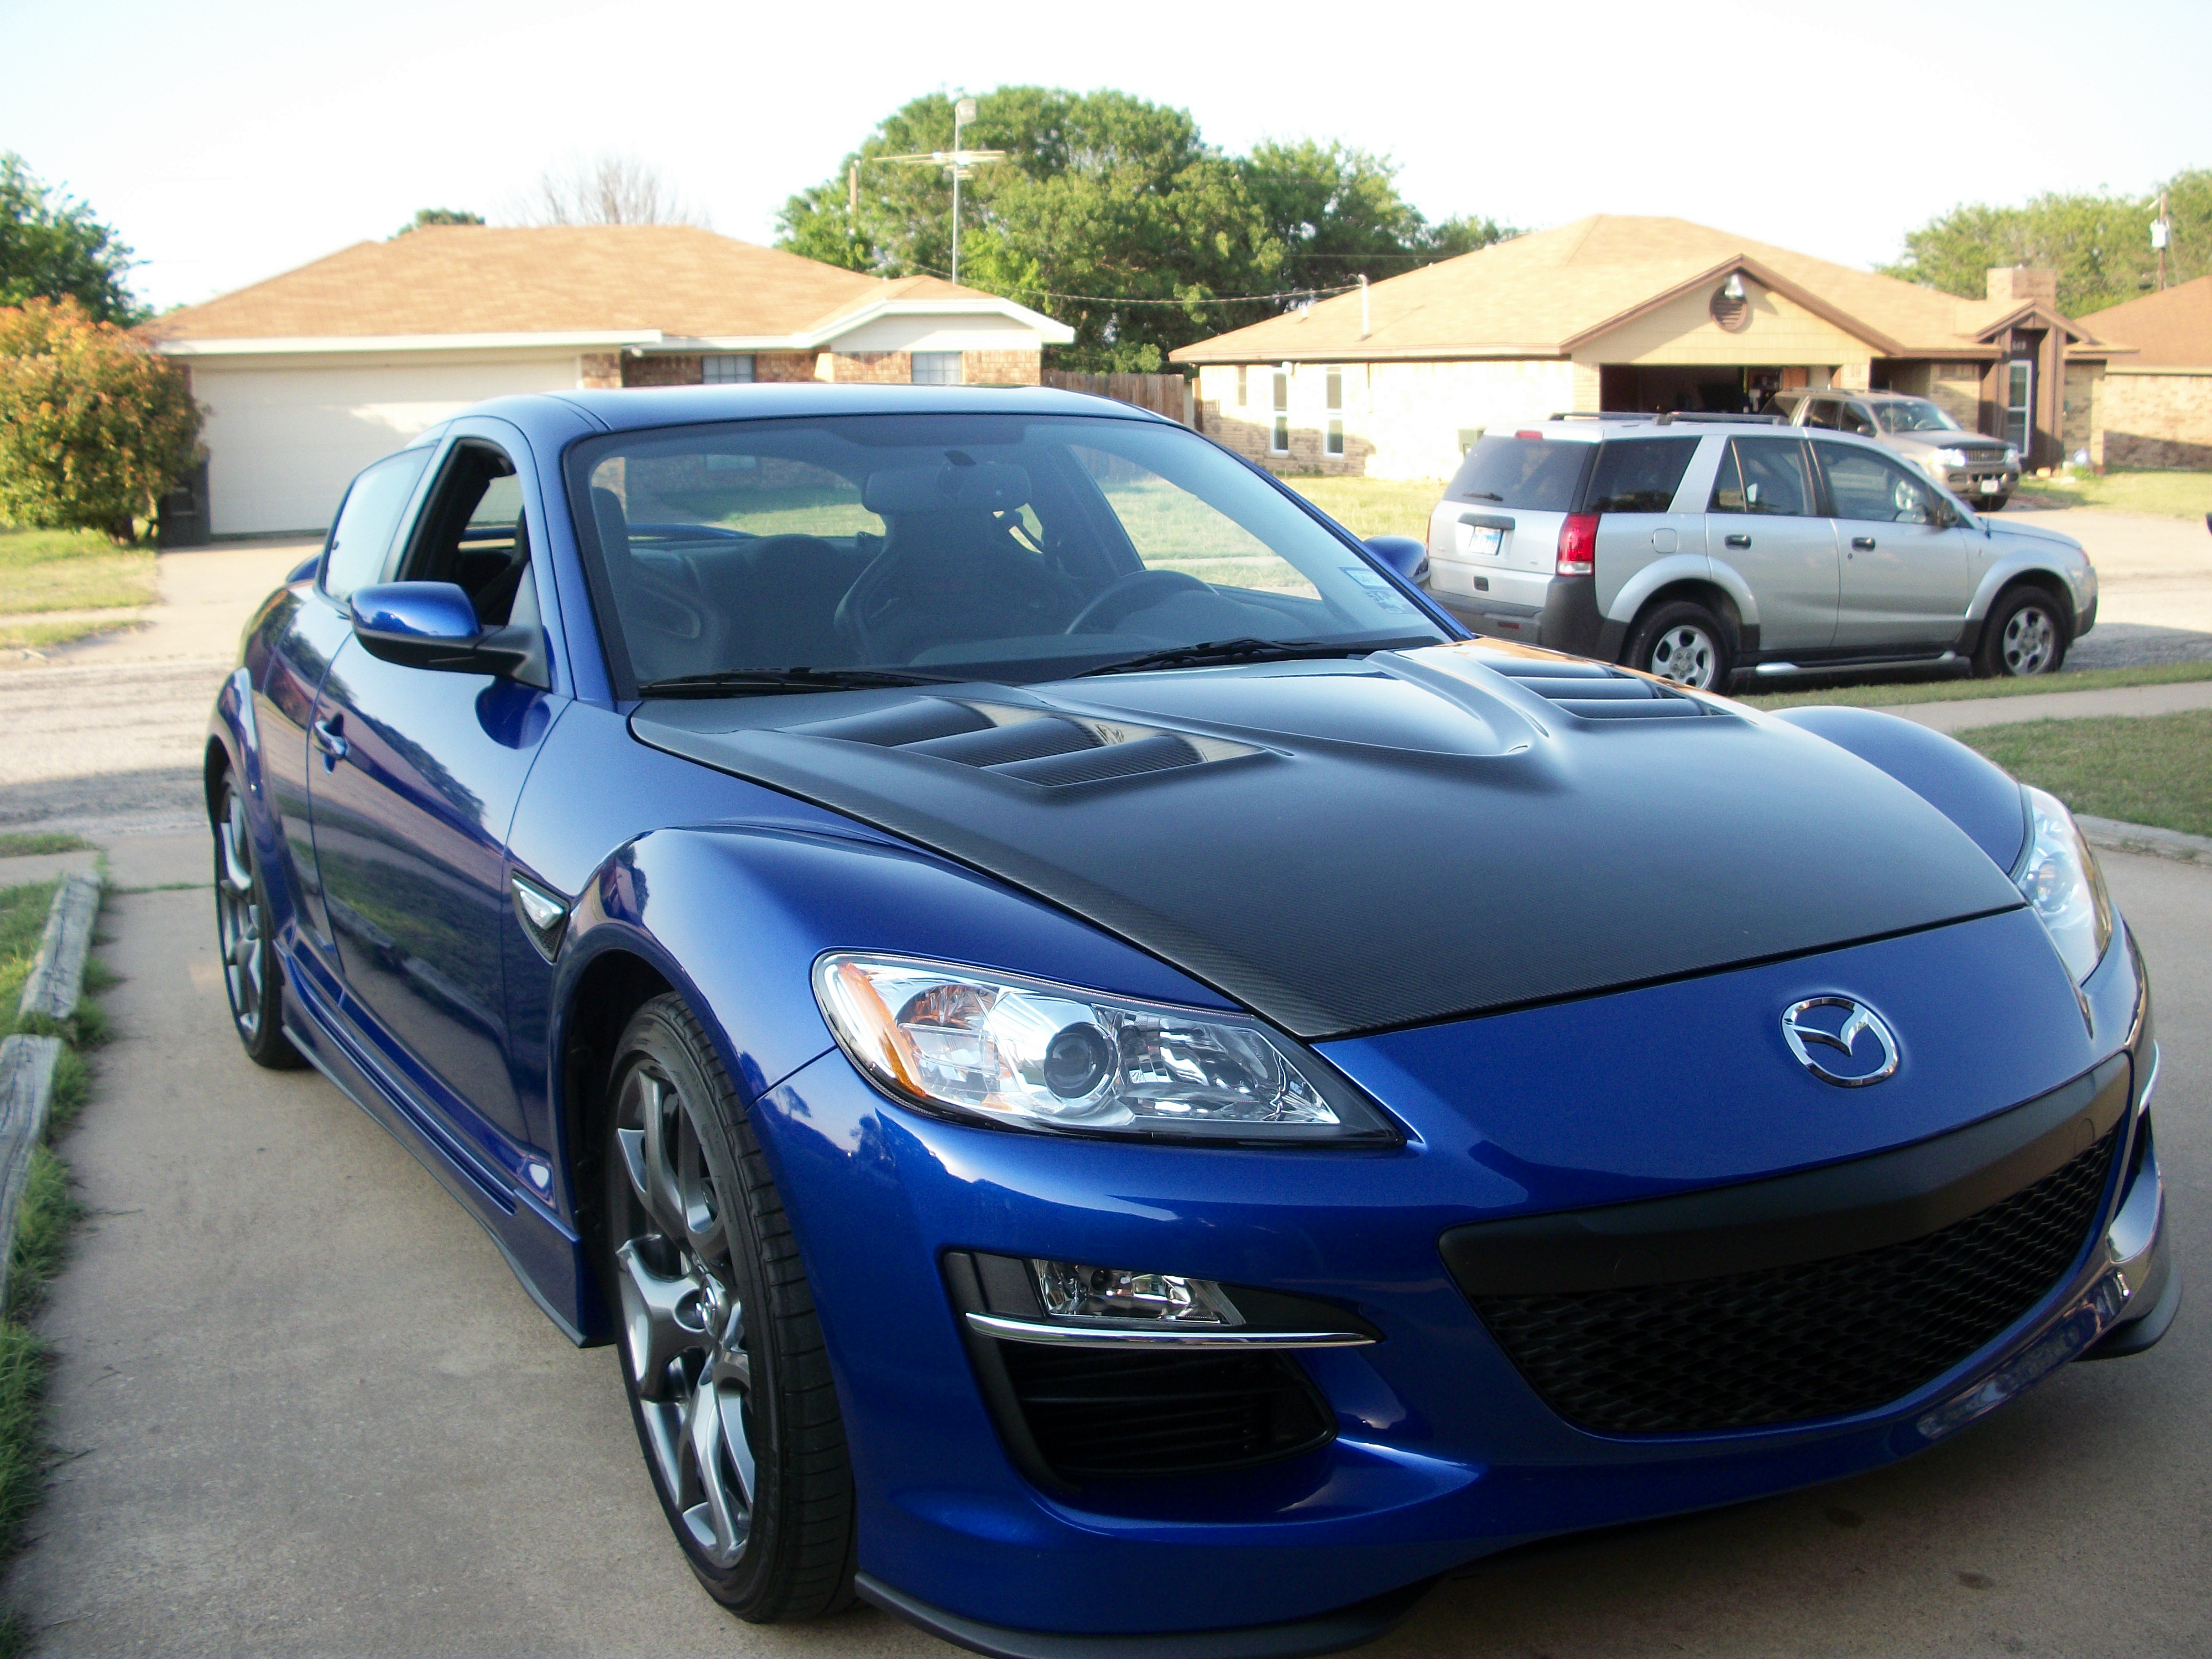 loki73 2009 mazda rx-8 specs, photos, modification info at cardomain